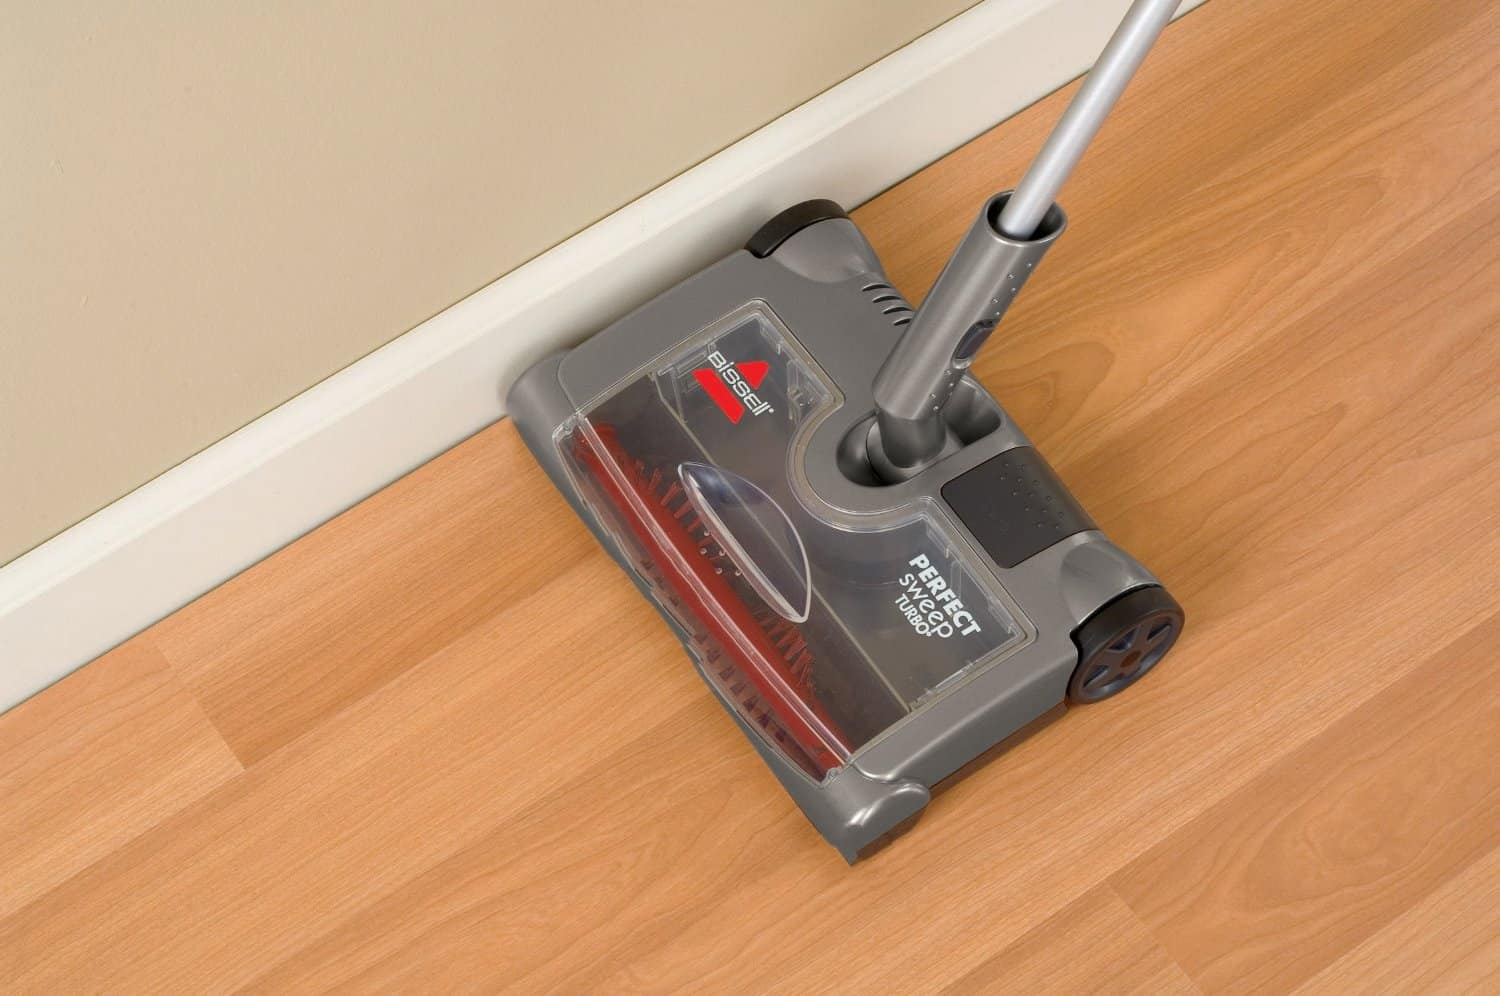 Edge brush picks up dirt around baseboards too